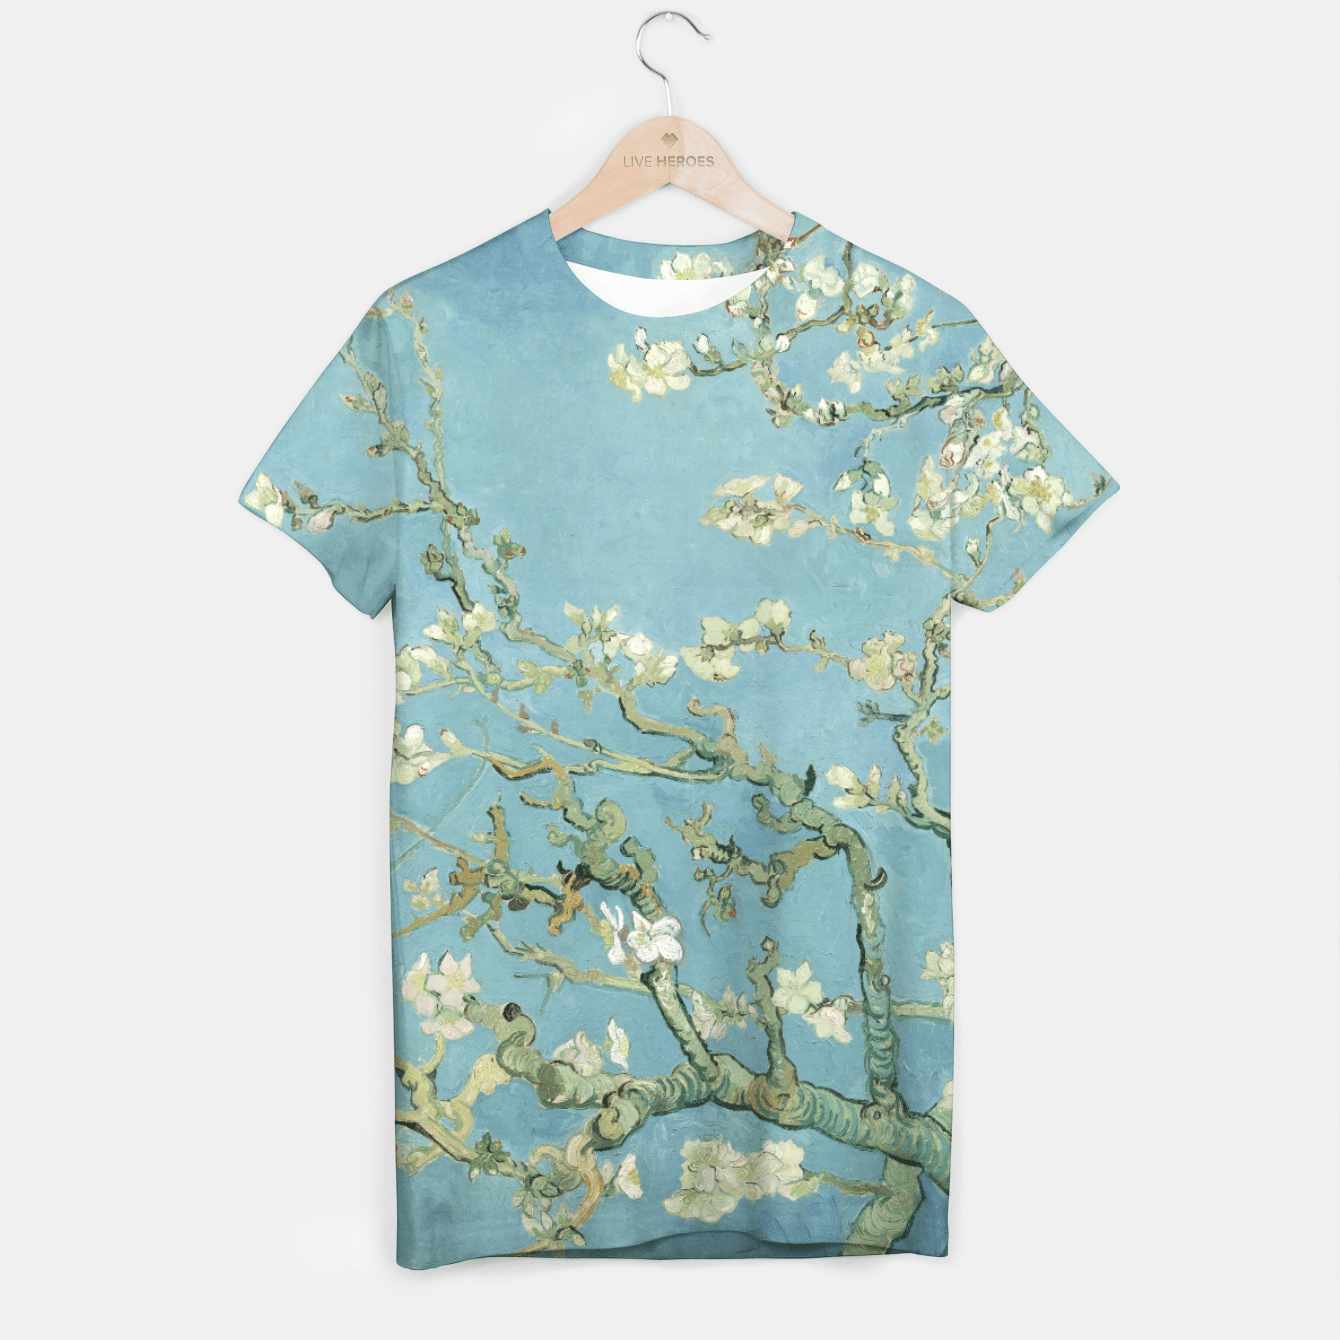 ALMOND BLOSSOM BY ViNCENT VAN GOGH T-shirt, Live Heroes